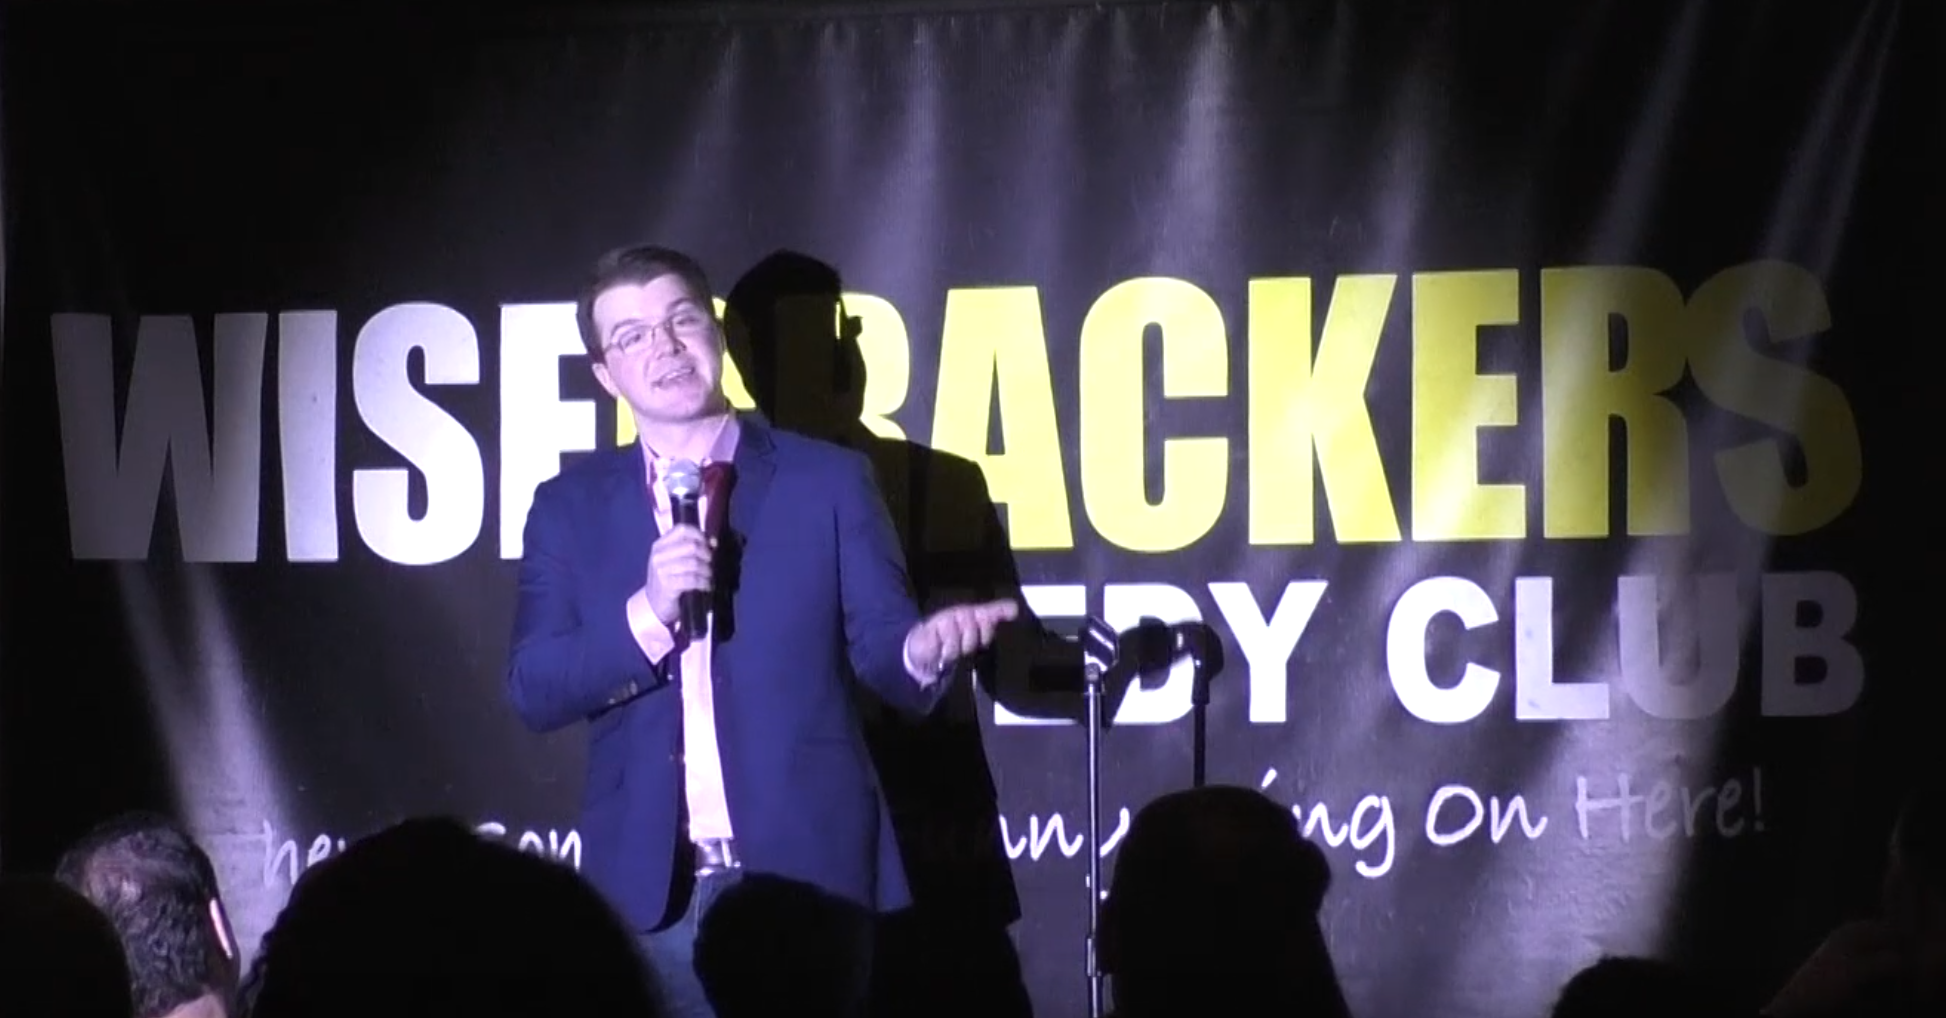 Clinton Ware at Wisecrackers Comedy Club.PNG